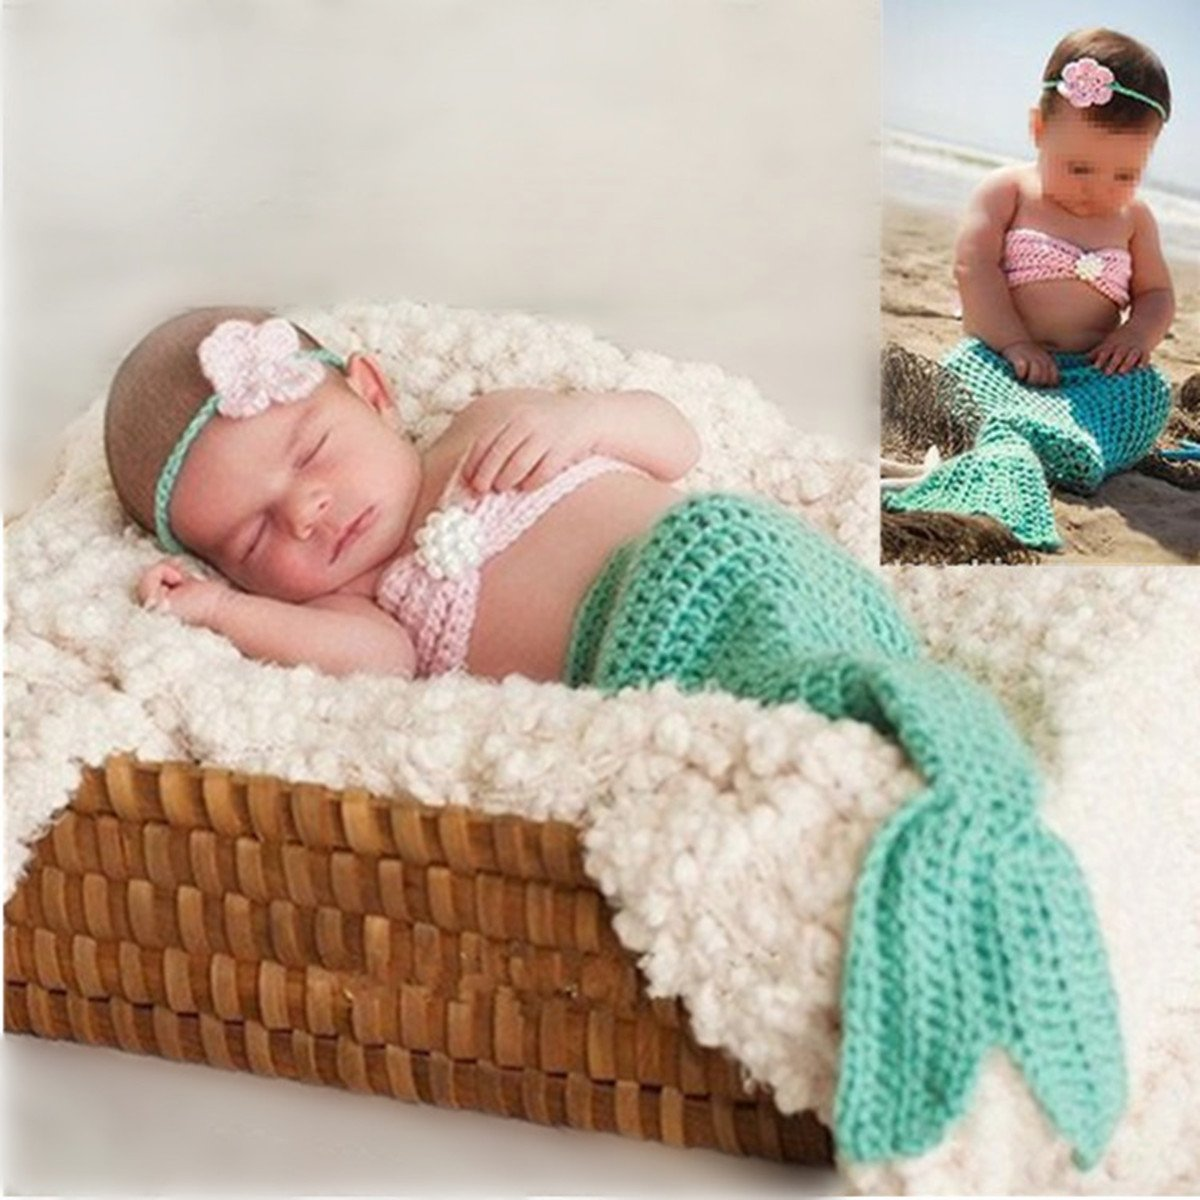 M&G House Fashion Newborn Baby Photography Prop Handmade Crochet Mermaid Headband Bra Tail Outfit by M&G House